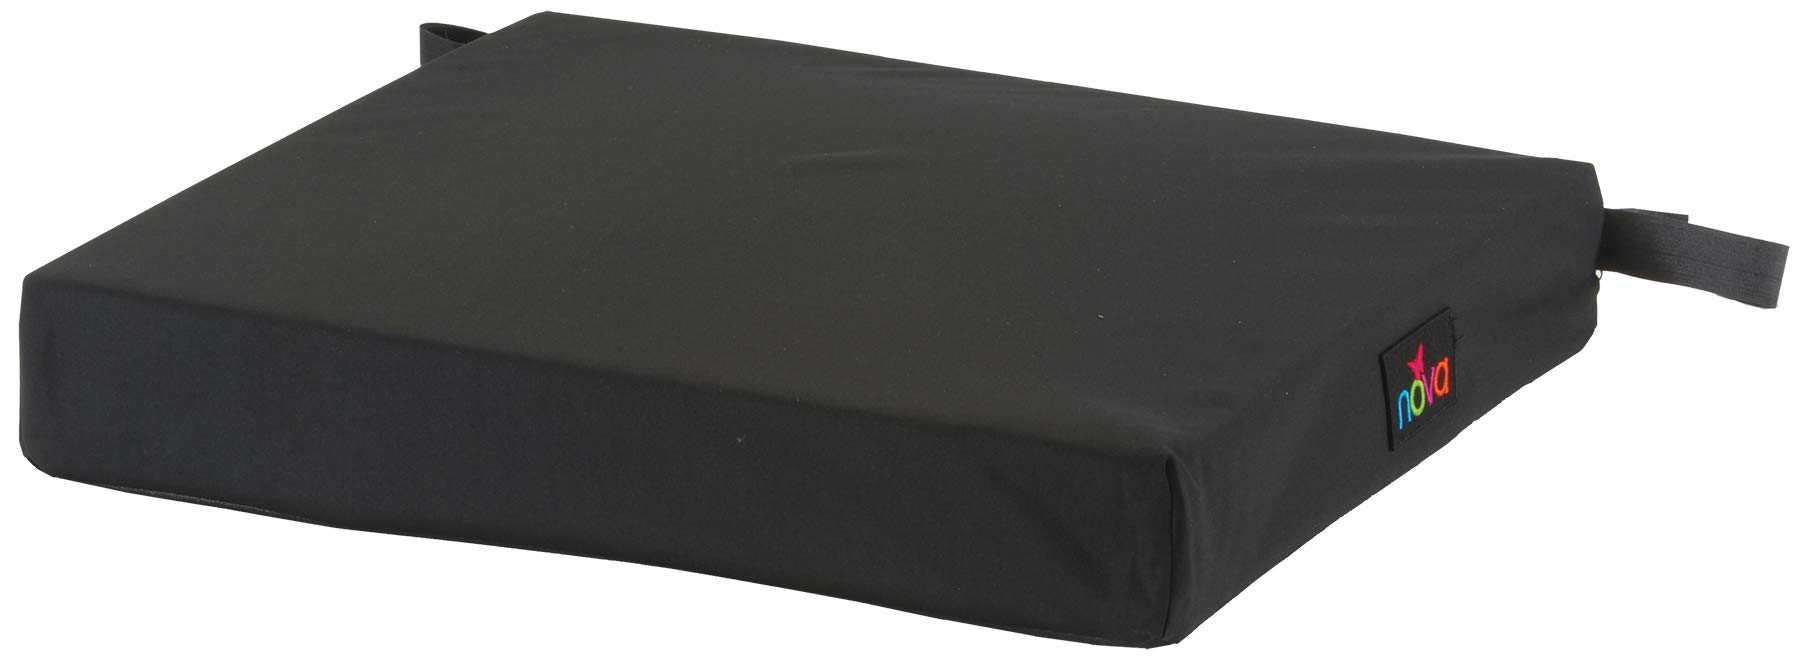 NOVA Gel & Memory Foam Seat & Wheelchair Cushion in 8 Sizes (from 16'' x 16'' to 18'' x 24'' Extra Wide), Comfortable & Durable Everyday Seat Cushion with Removable Water Resistant Cover, 2'' or 3'' Thick by NOVA Medical Products